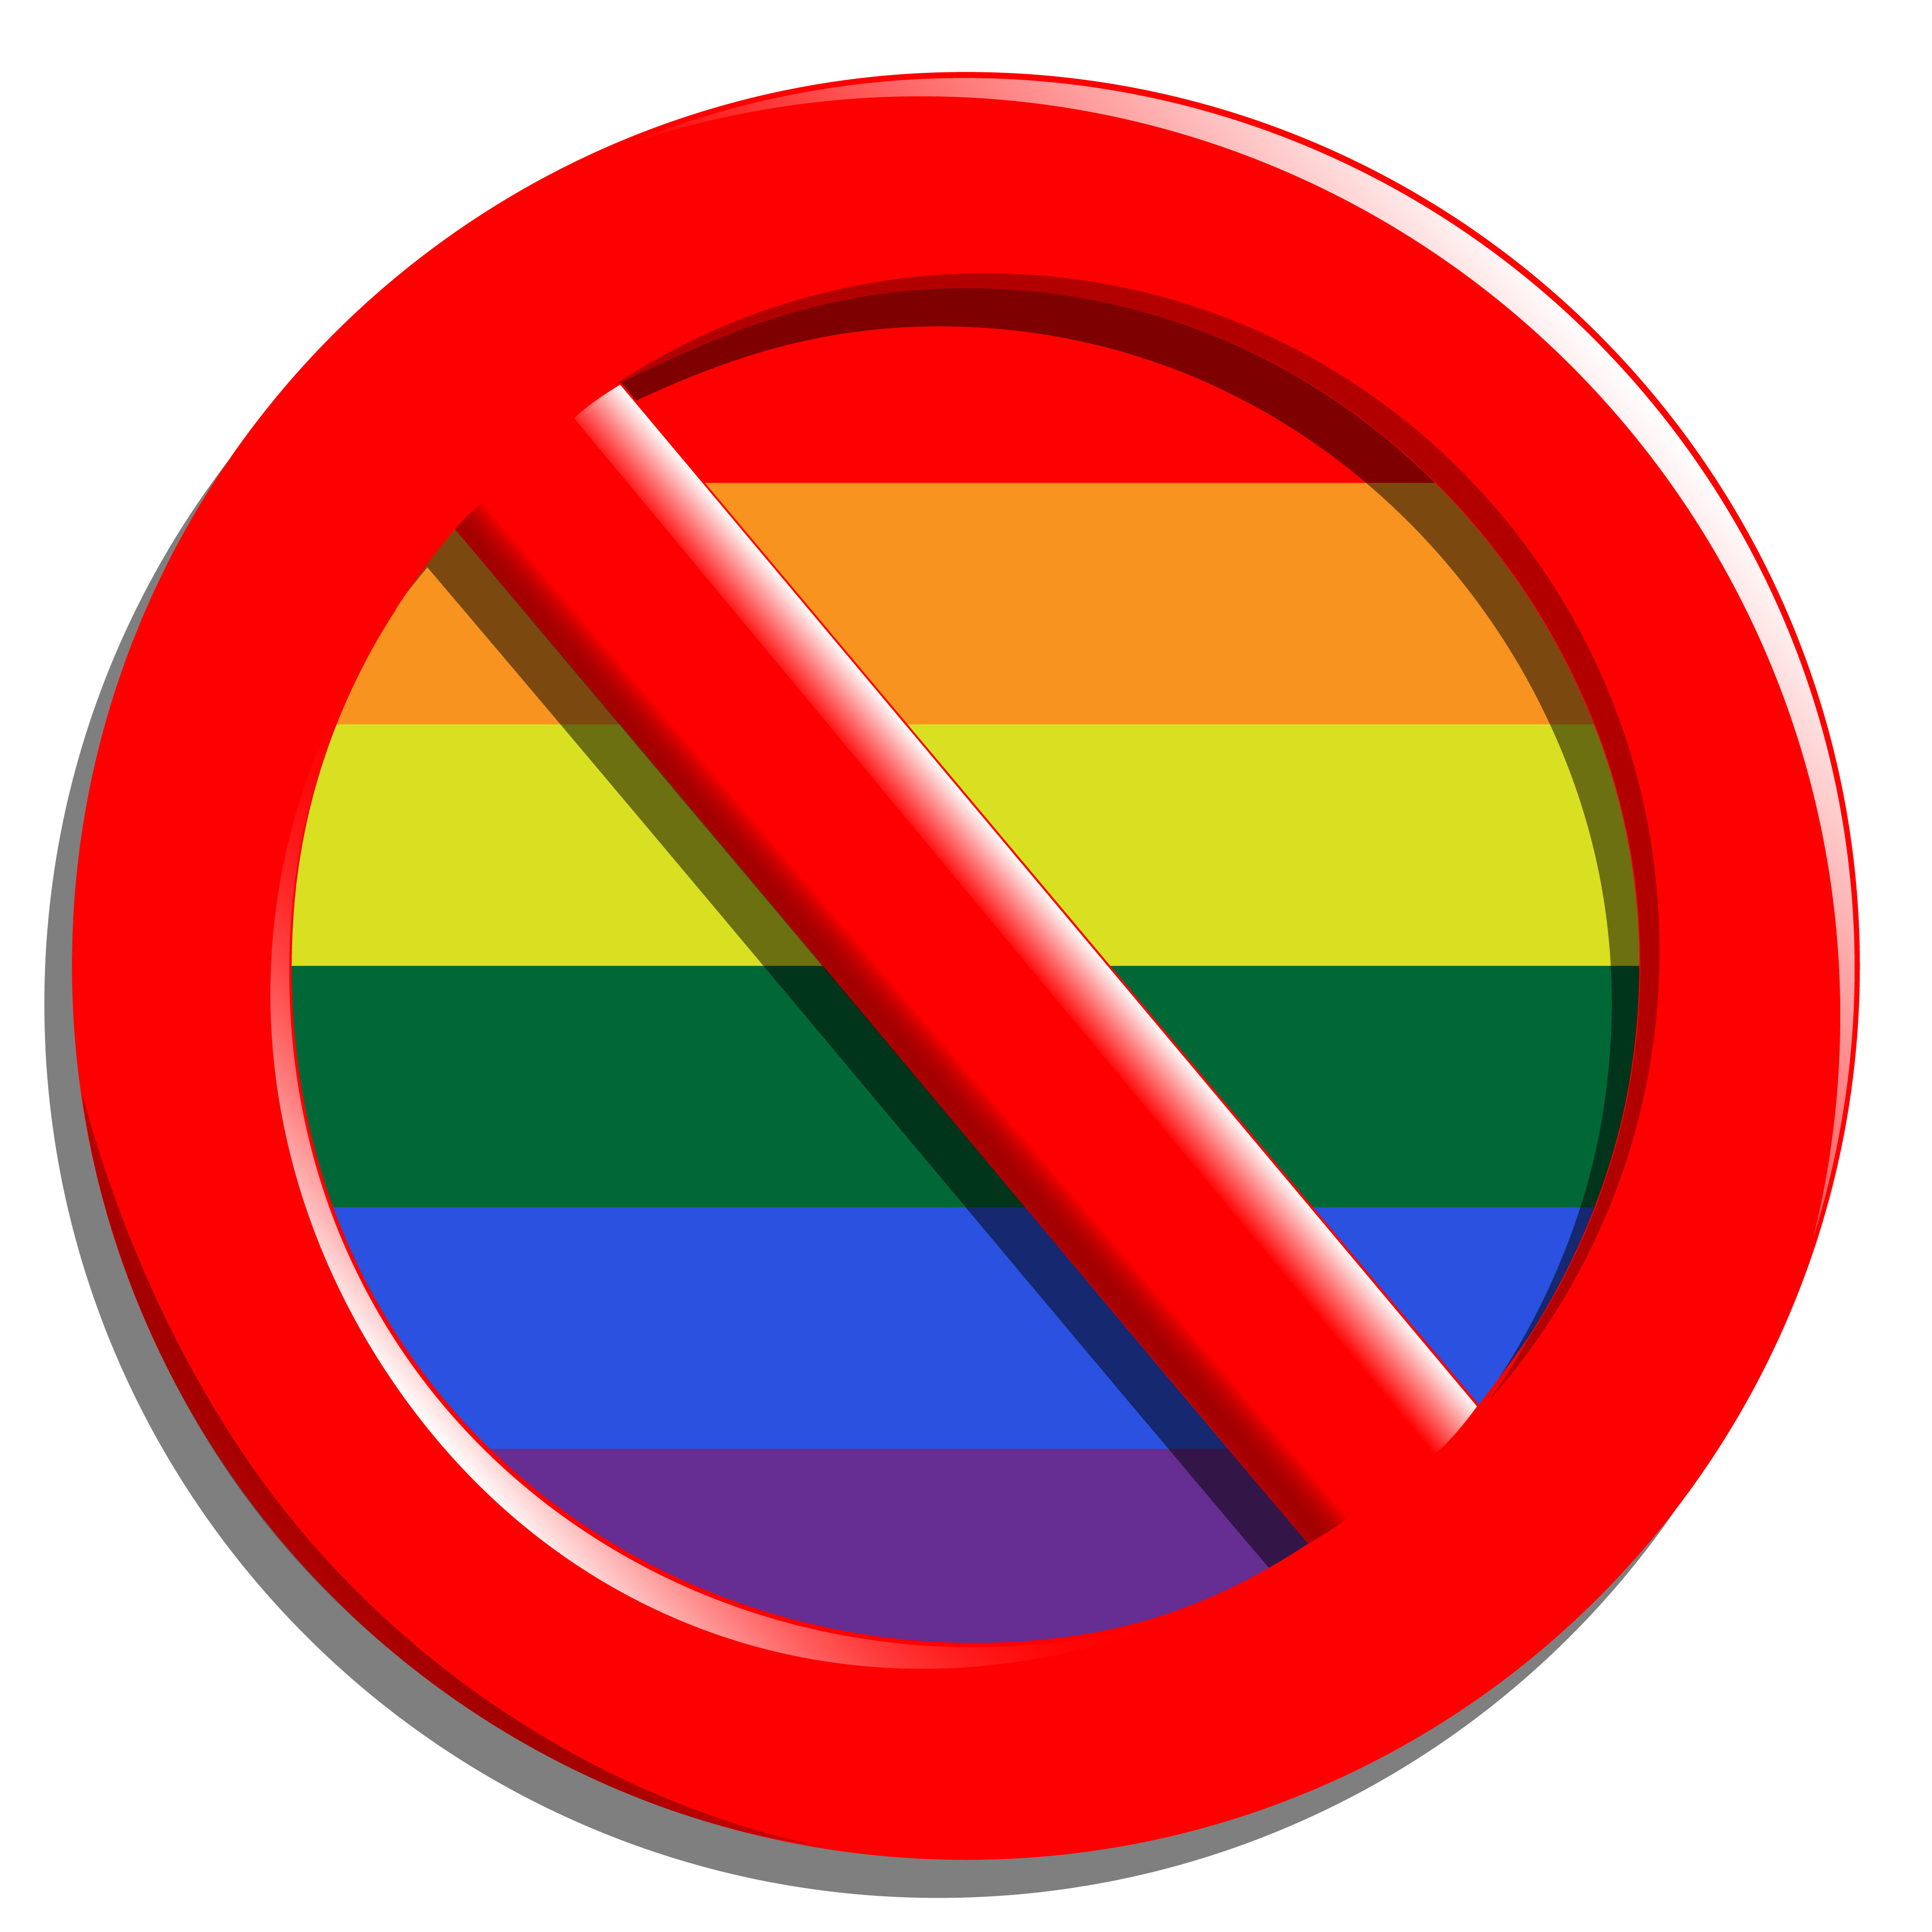 States Introducing Bans on Anti-Discrimination Laws